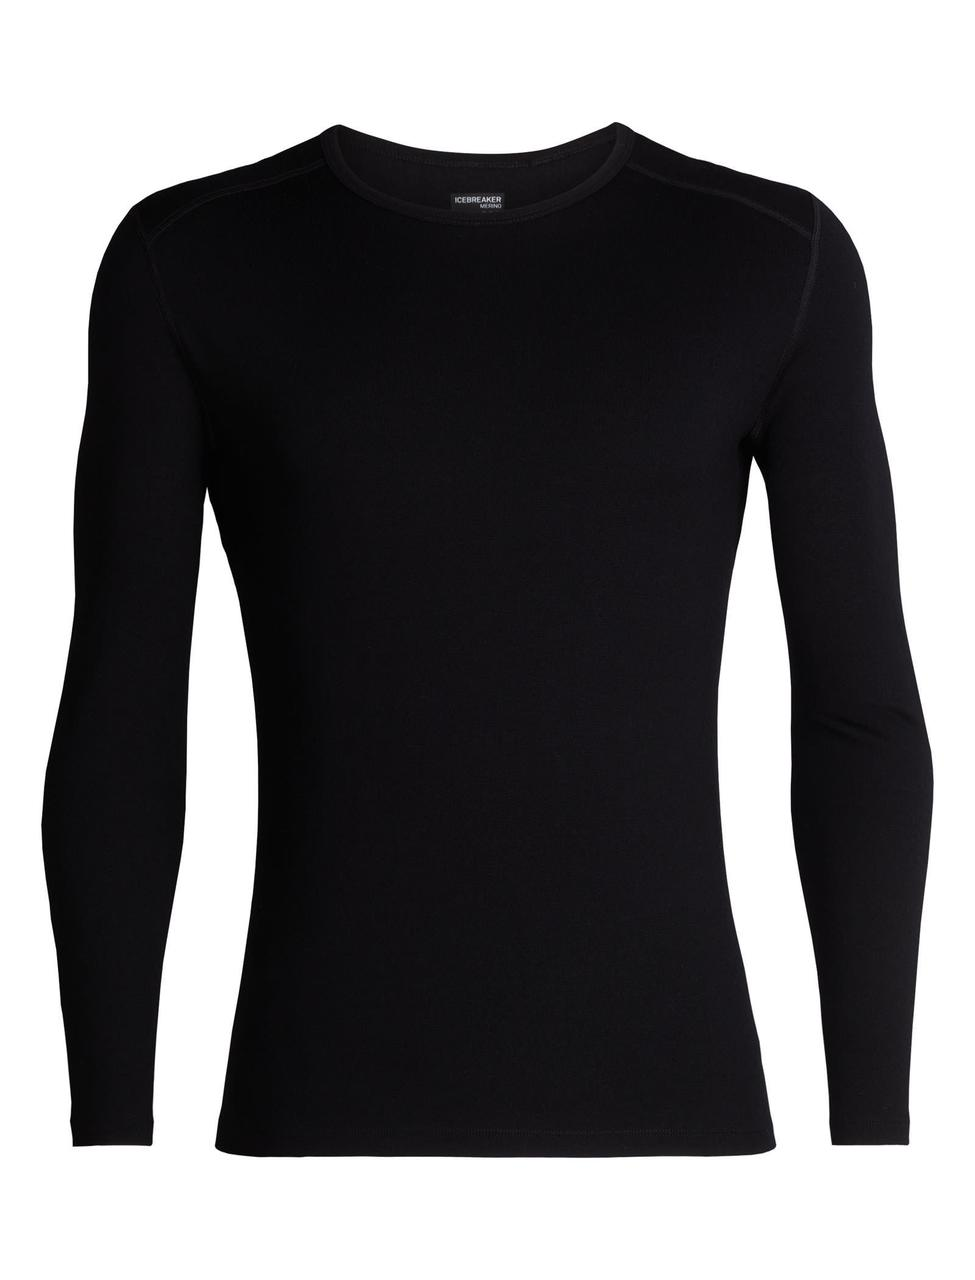 Термофутболка мужская Icebreaker 260 Tech Long Sleeve Crewe Black M (104 371 001 M)